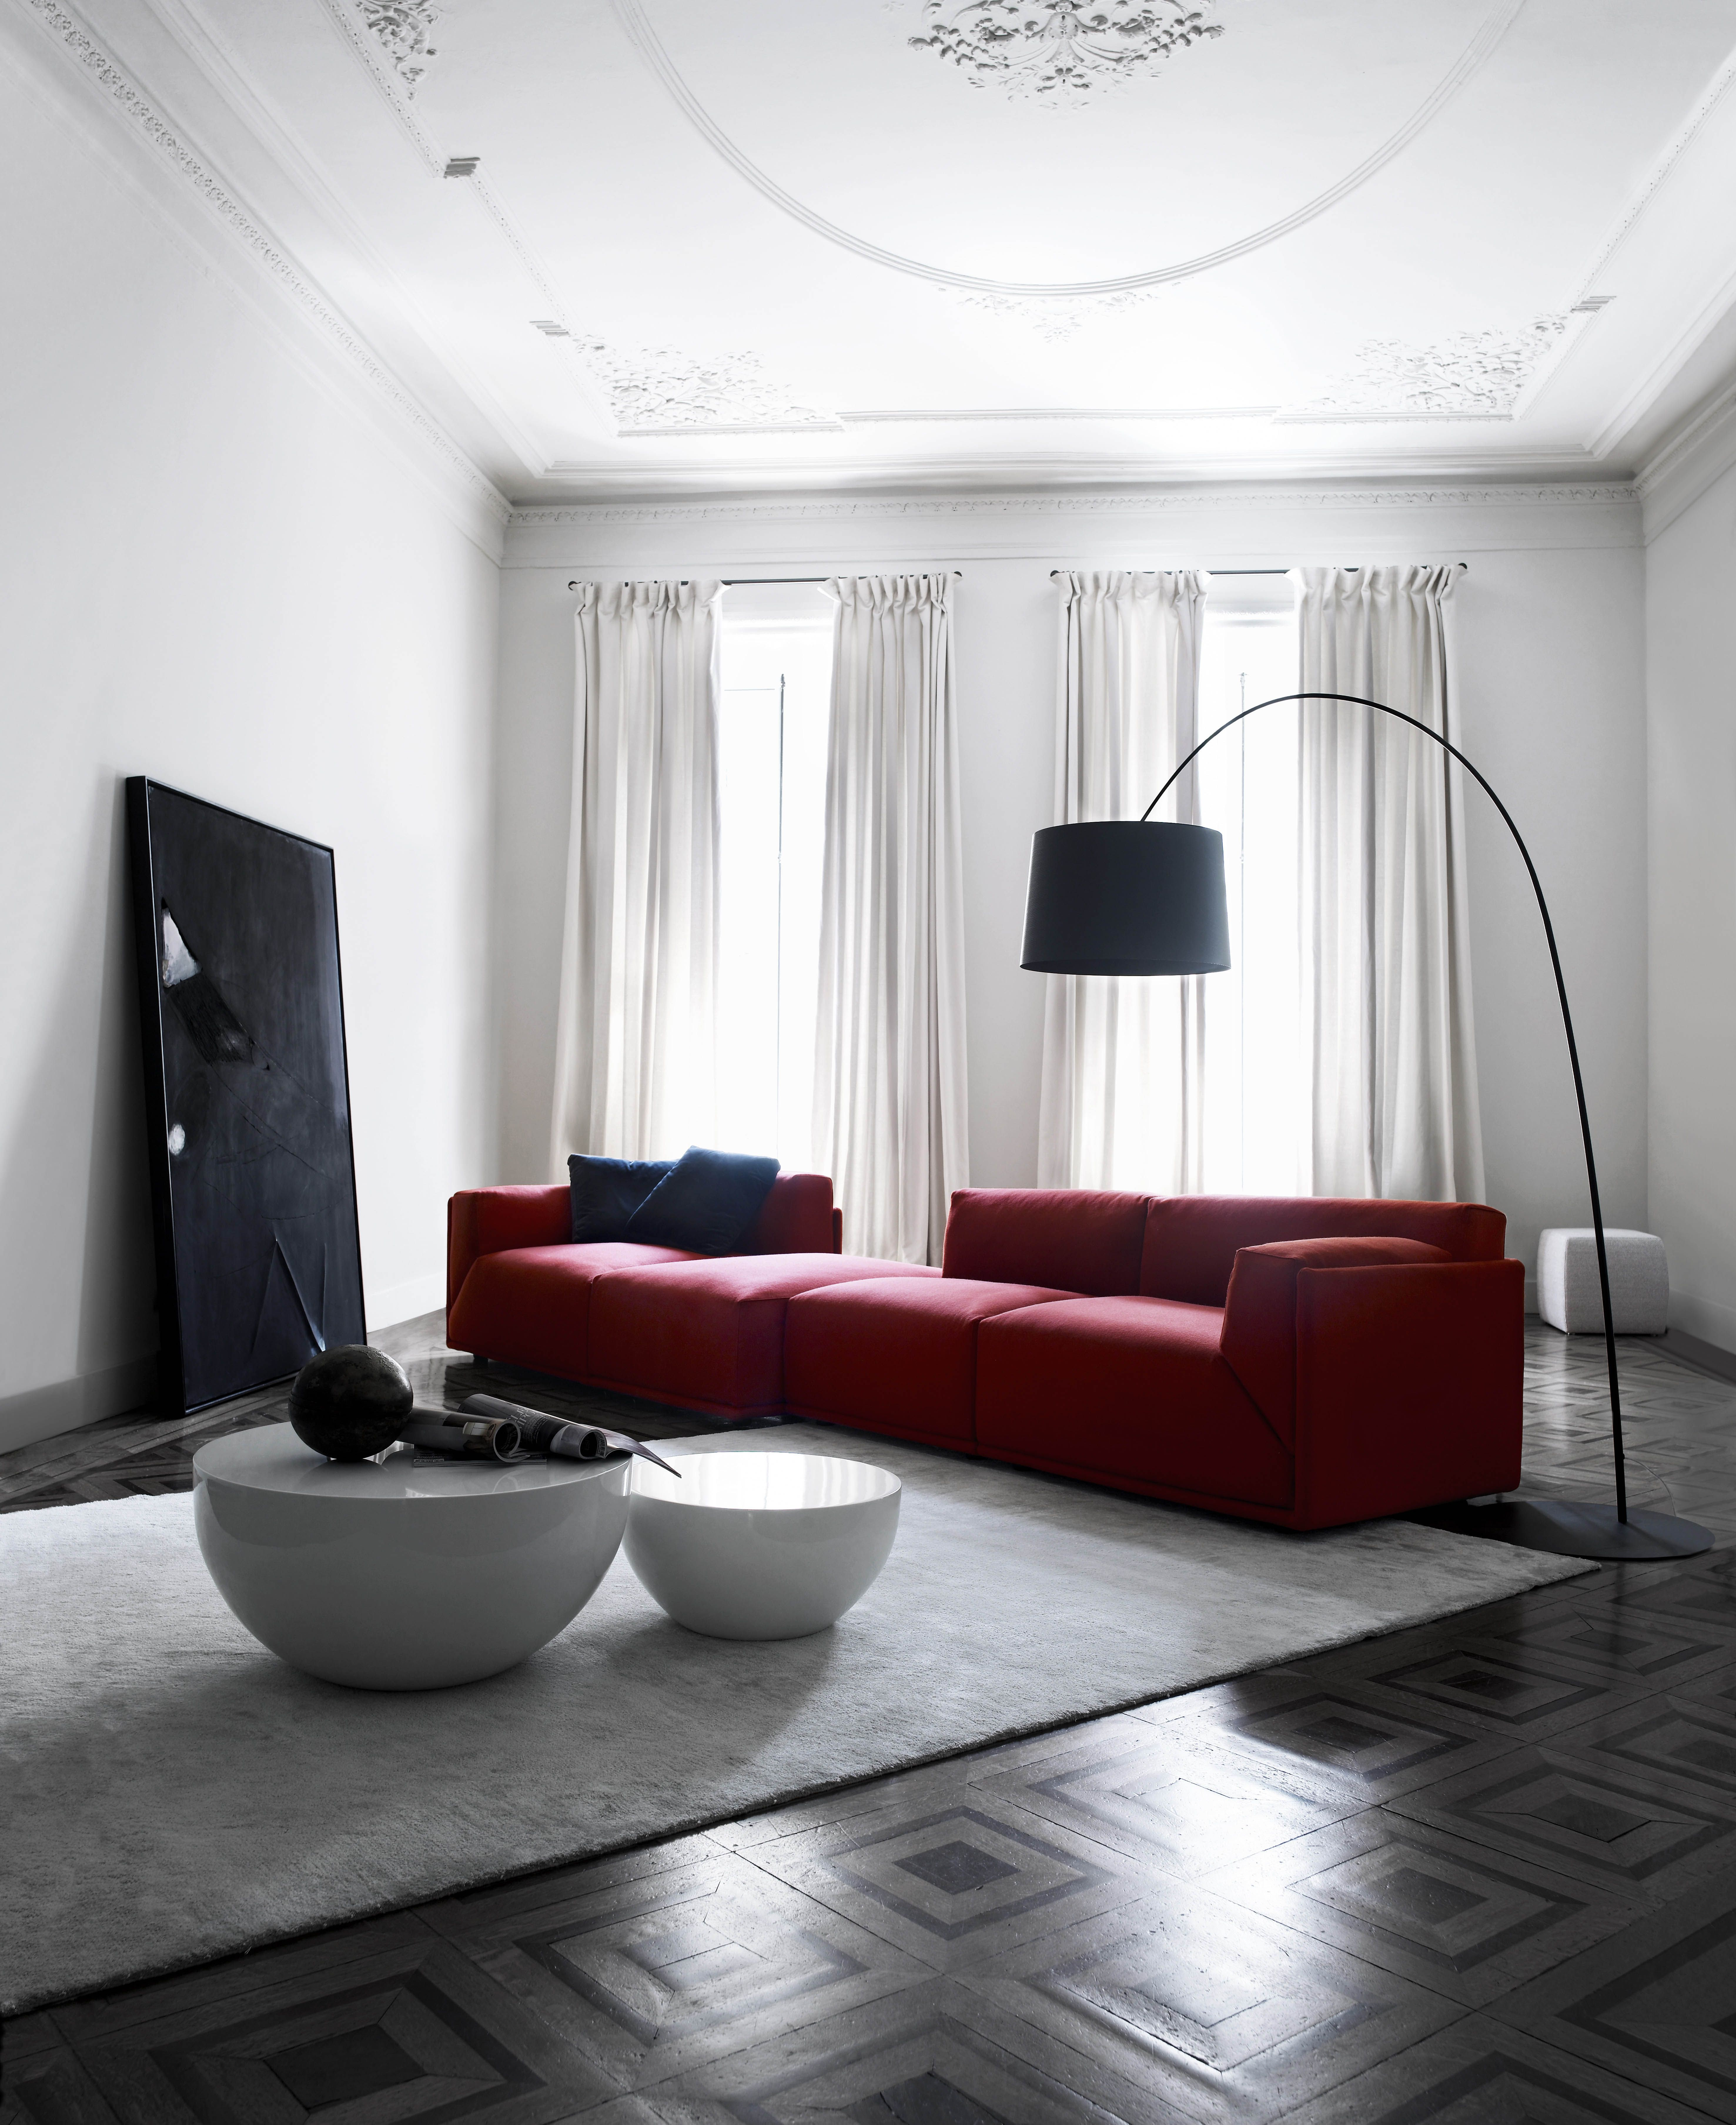 art sofa namestaj floral patterned sofas meridiani i bacon modular and bongo low tables design direction andrea parisio